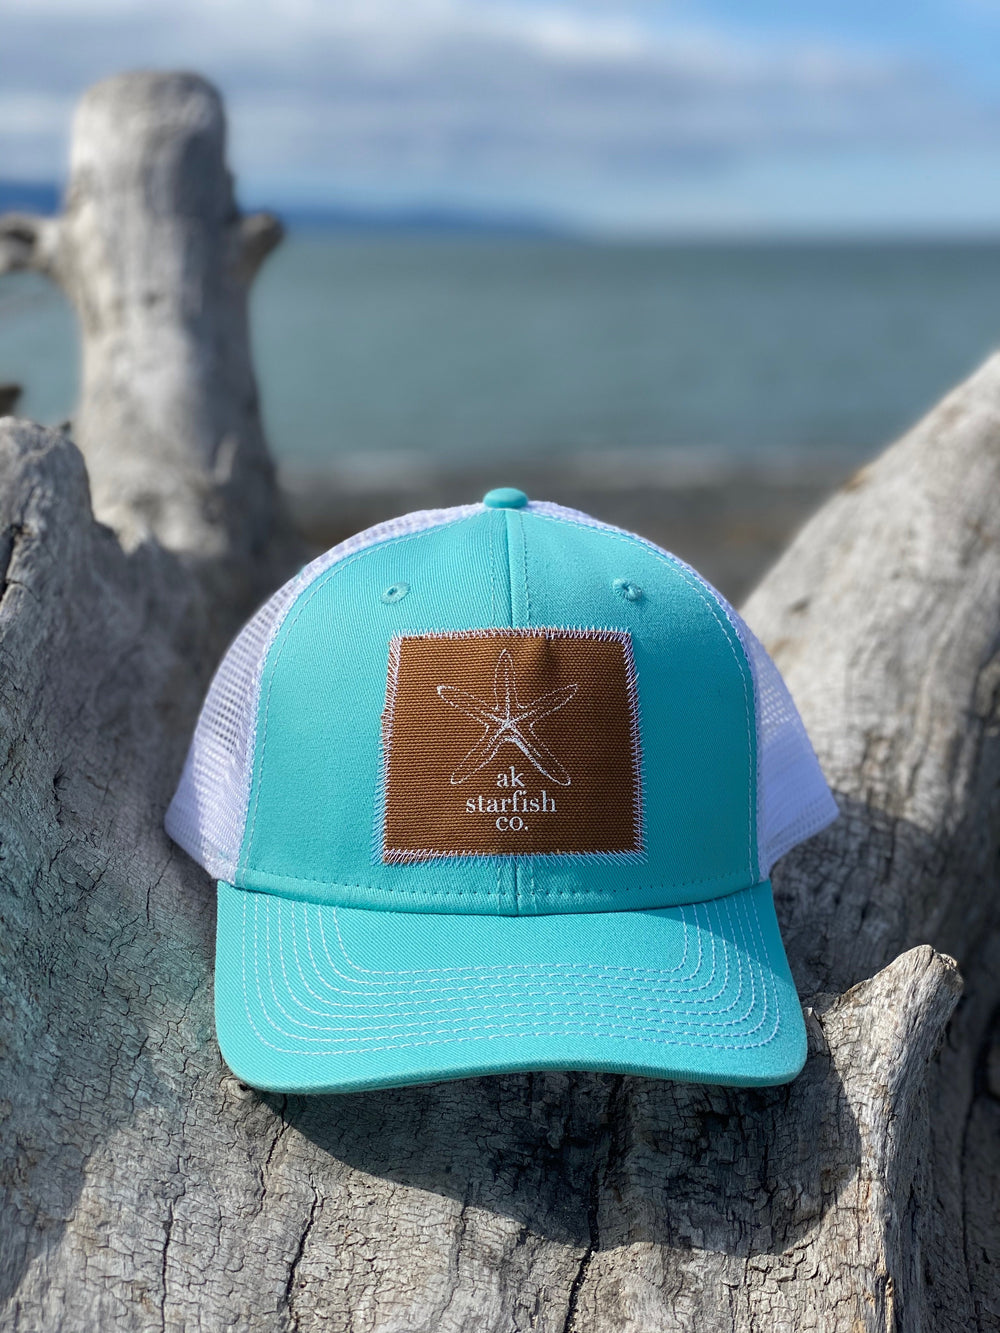 Glacier AK Starfish Co. Patch Hat $35.00